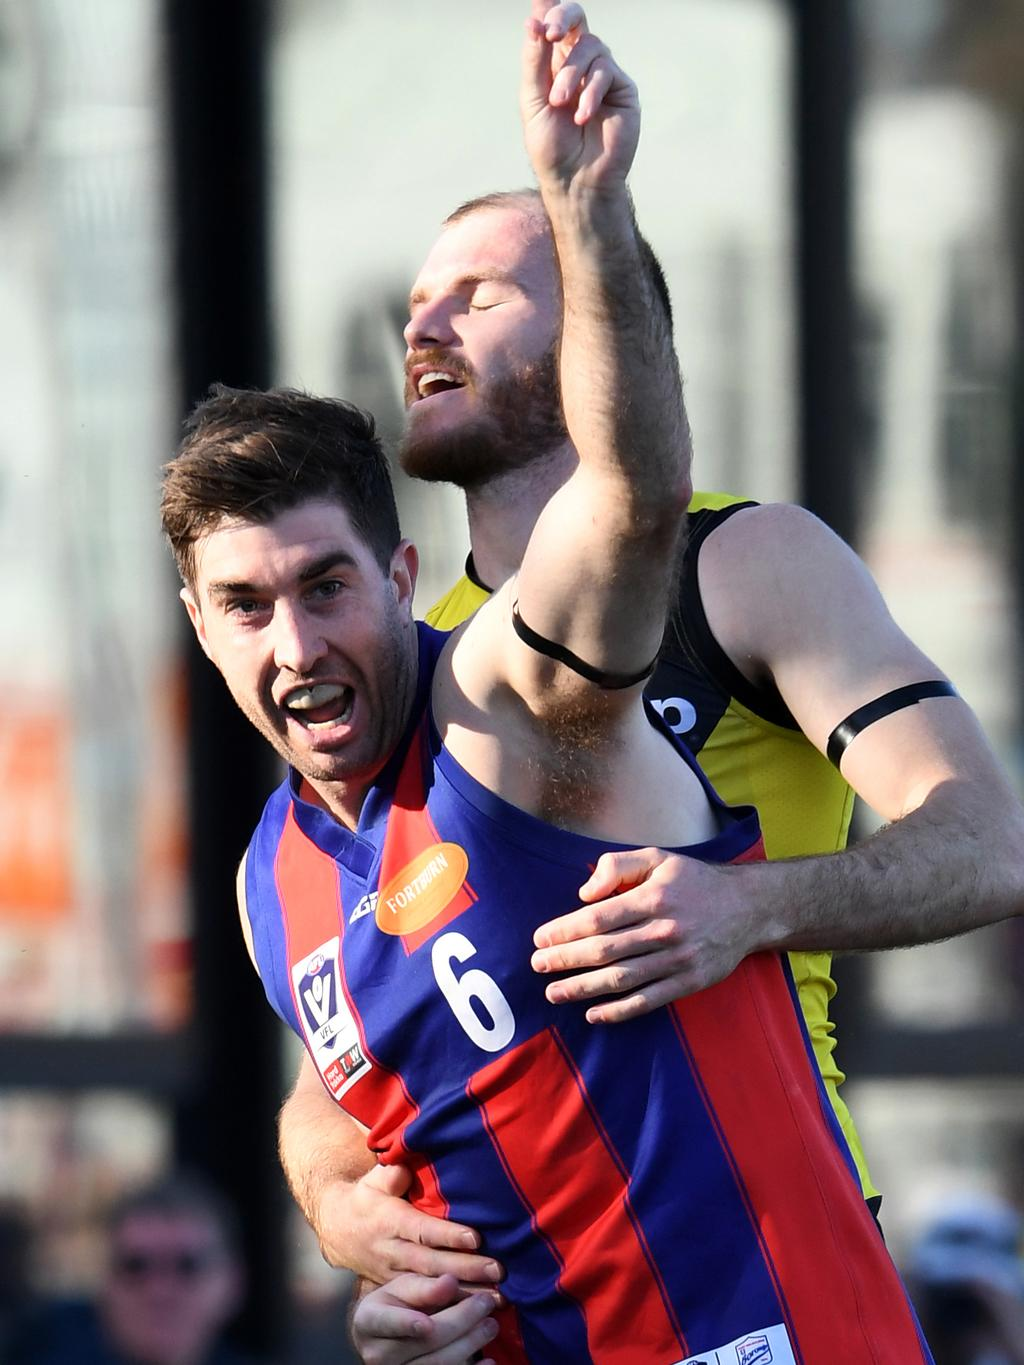 Jordie Lisle celebrates a goal for Port Melbourne, which must cut its list to 40 players next year.